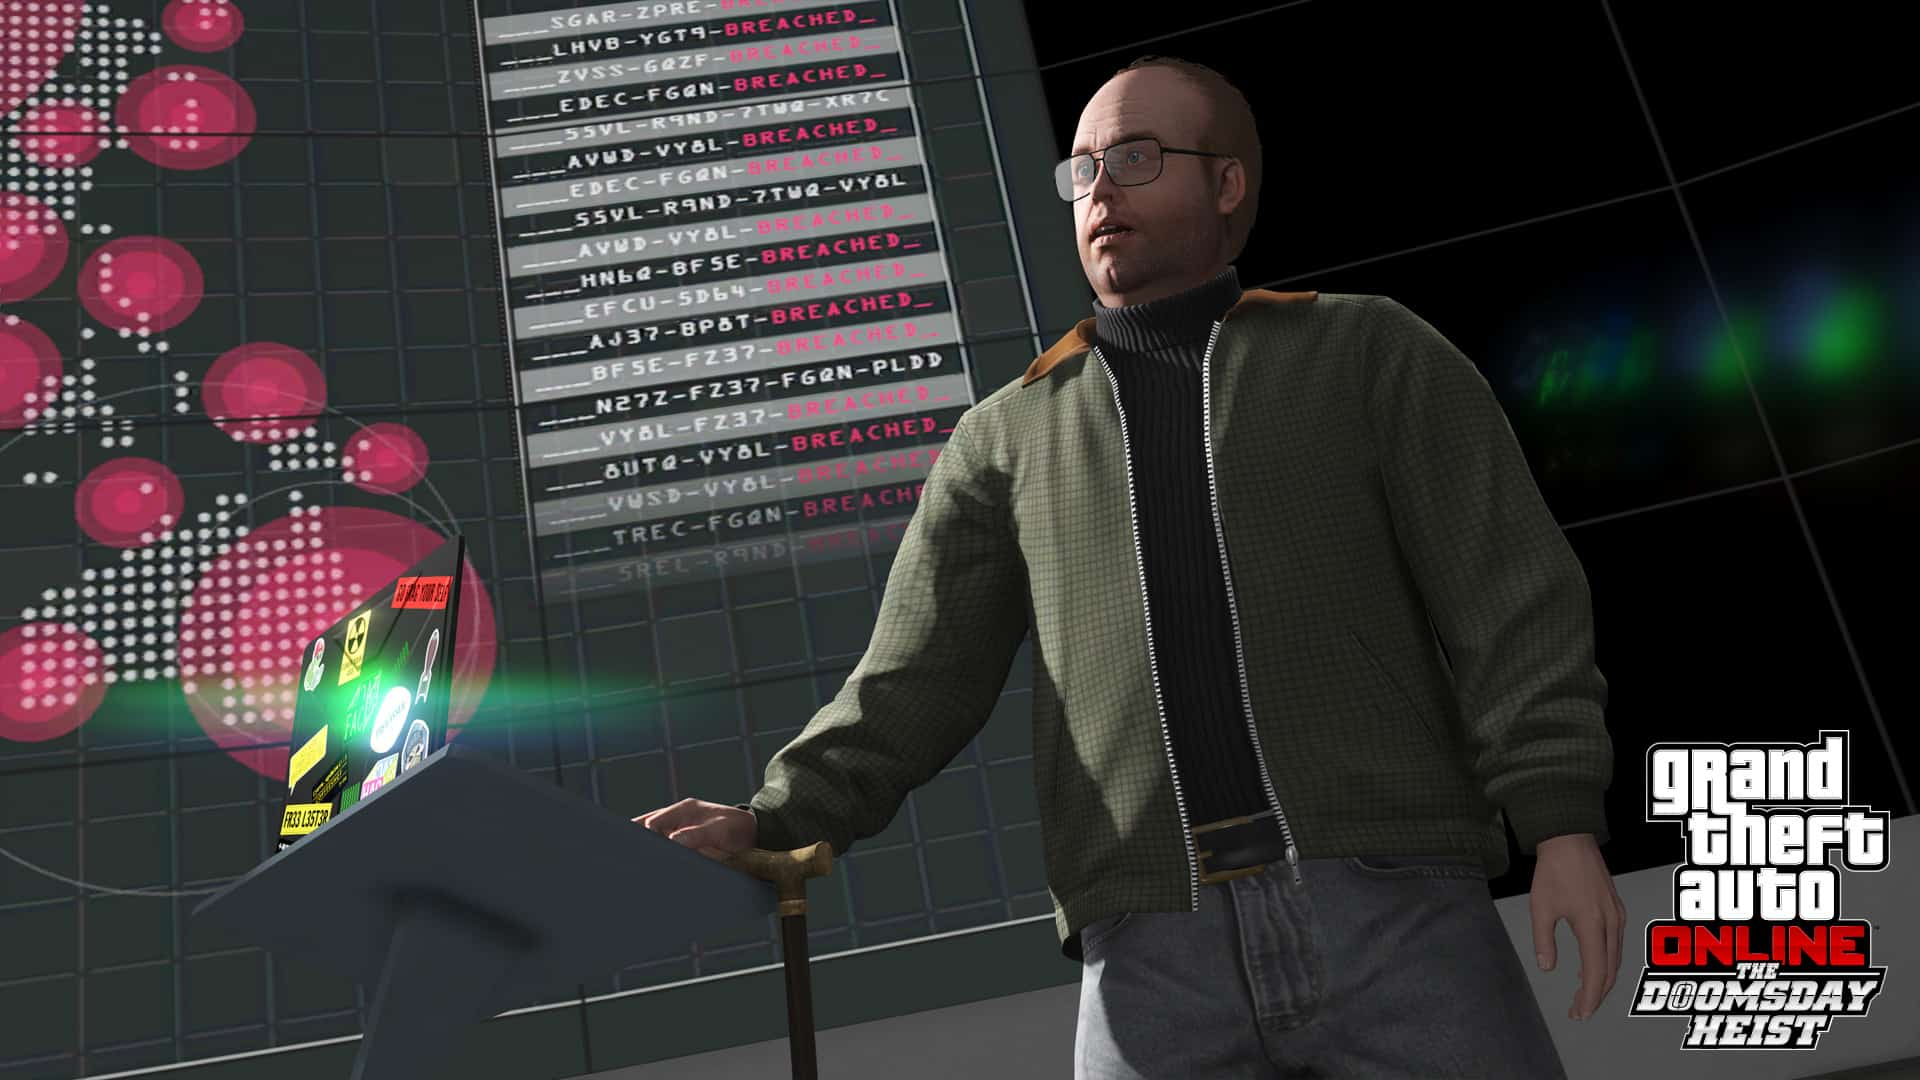 Is GTA Online Still Canon In-Universe?